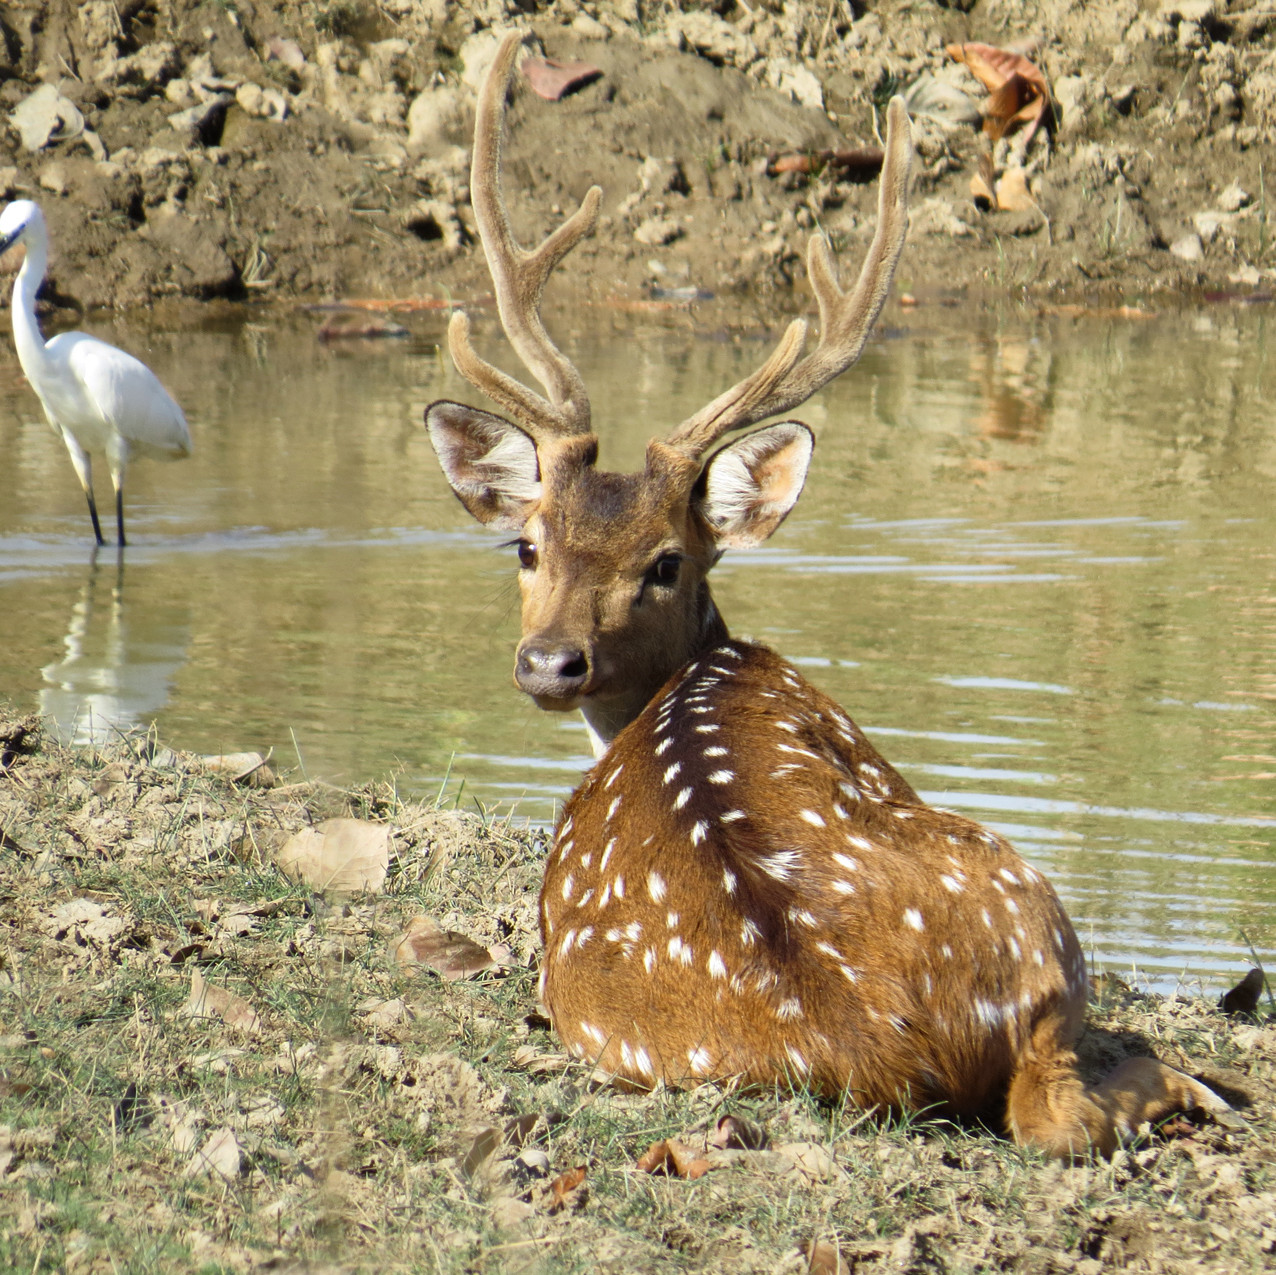 Spotted Deer - Chital